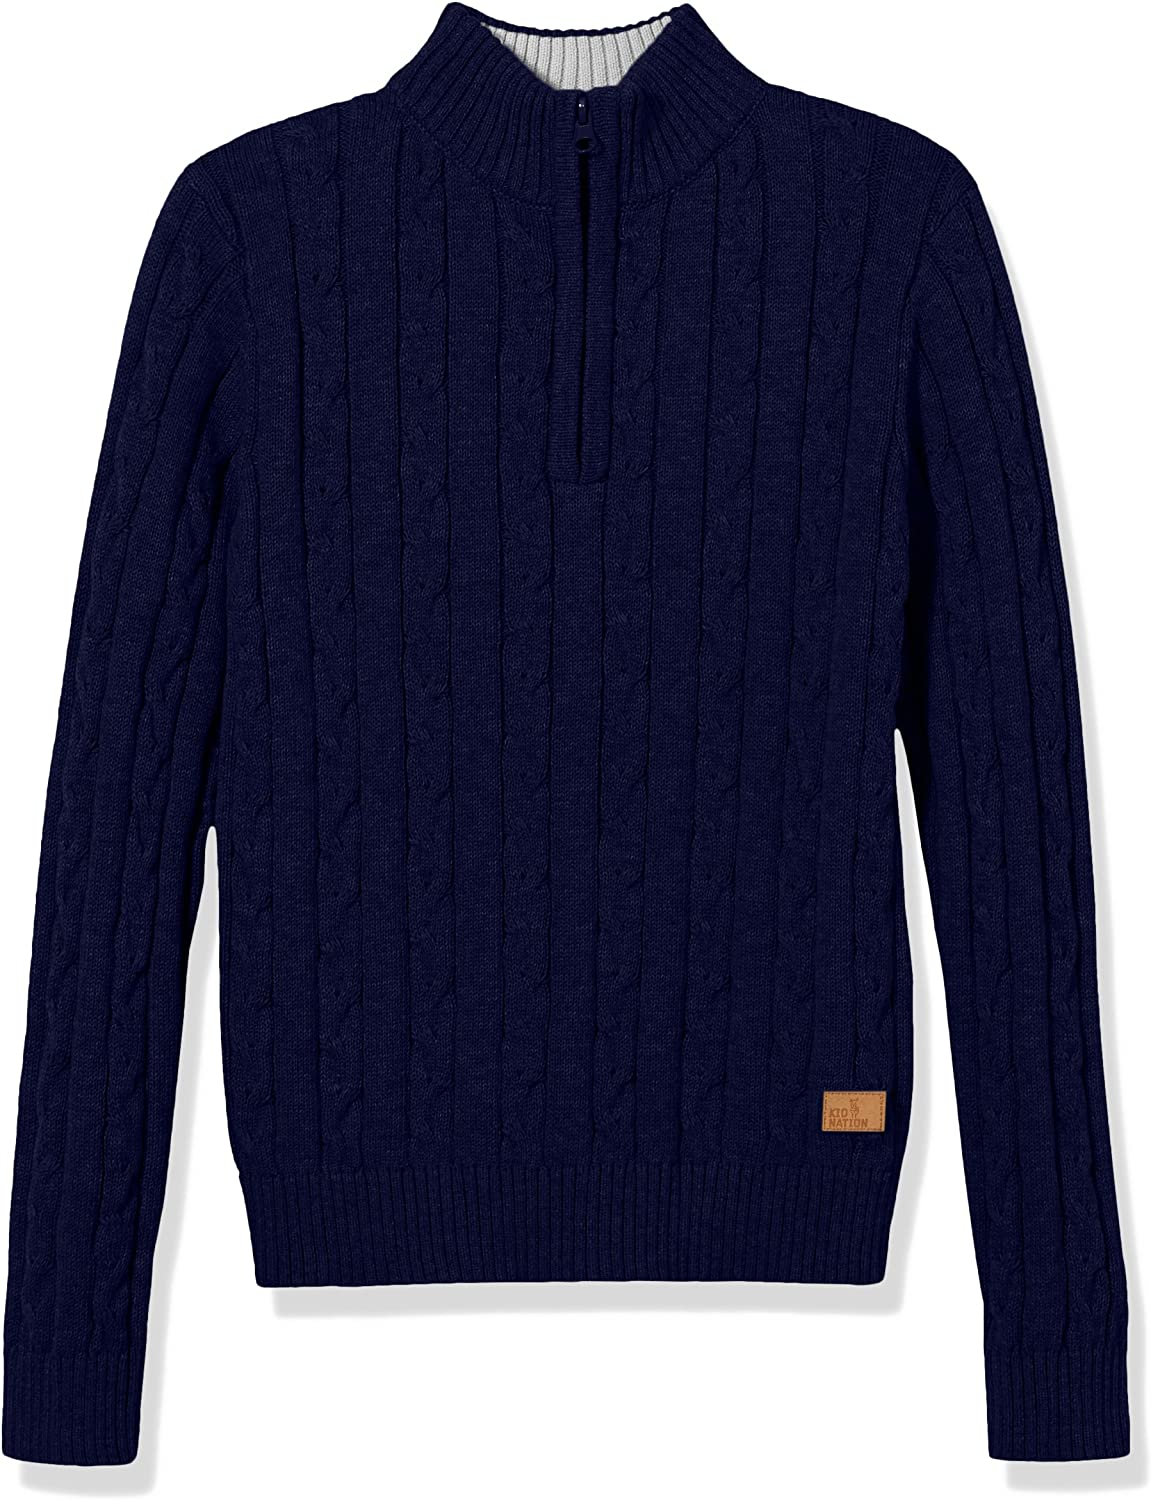 Amazon Essentials' Long Sleeve Pullover Casual Style Half Placket Cable Knit Sweater S Navy